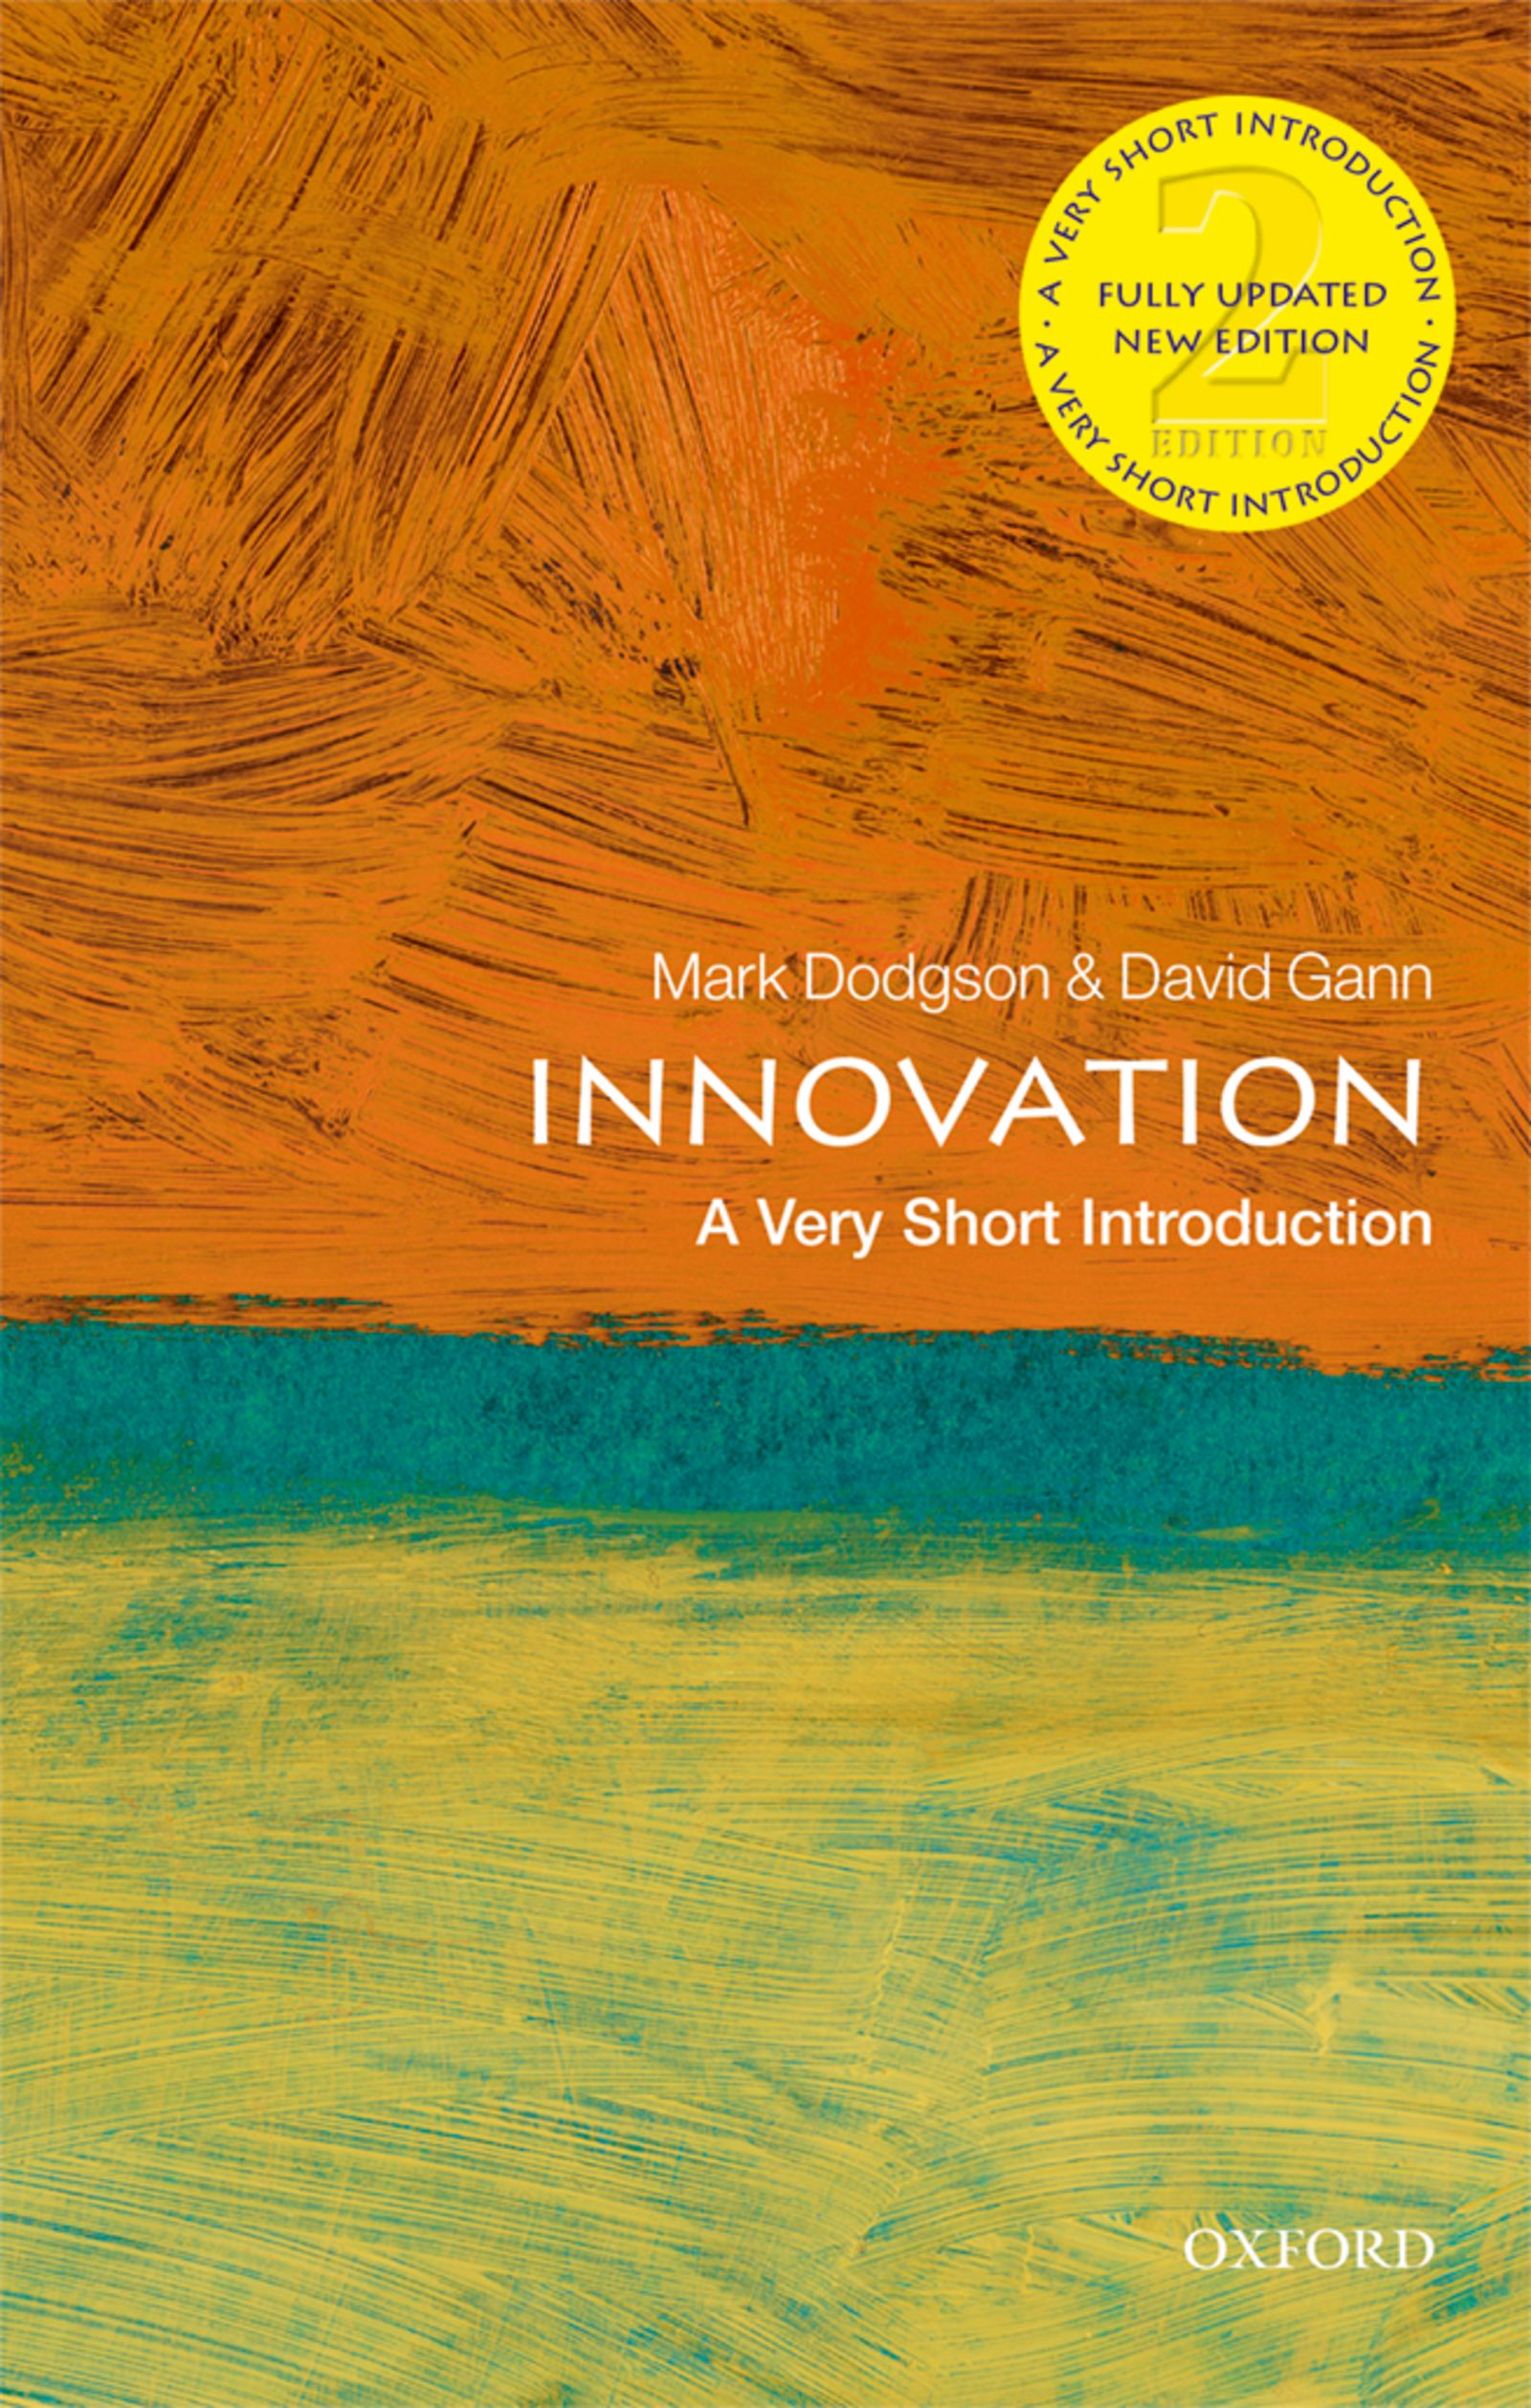 Download Ebook Innovation: A Very Short Introduction (2nd ed.) by Mark Dodgson Pdf